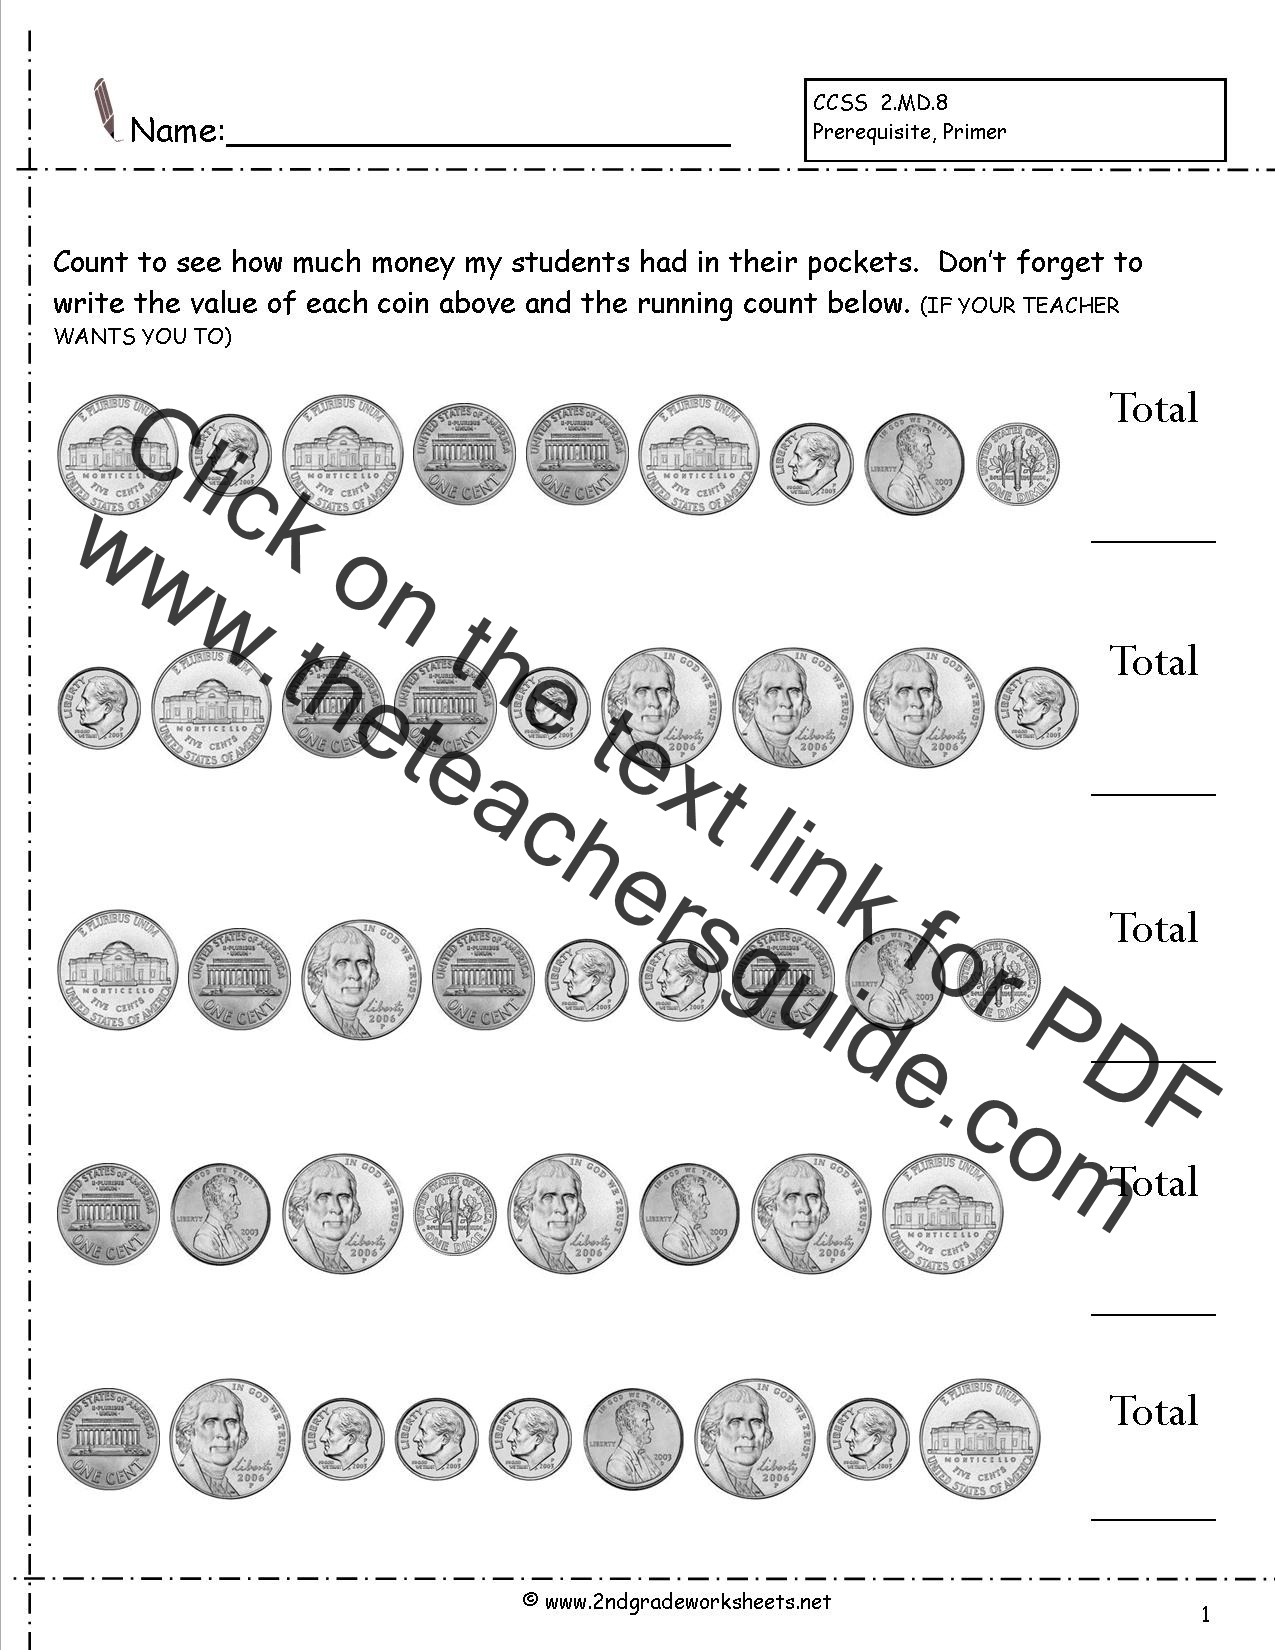 Worksheets 2nd Grade Common Core Worksheets ccss 2 md 8 worksheets counting coins money worksheet without quarters common core